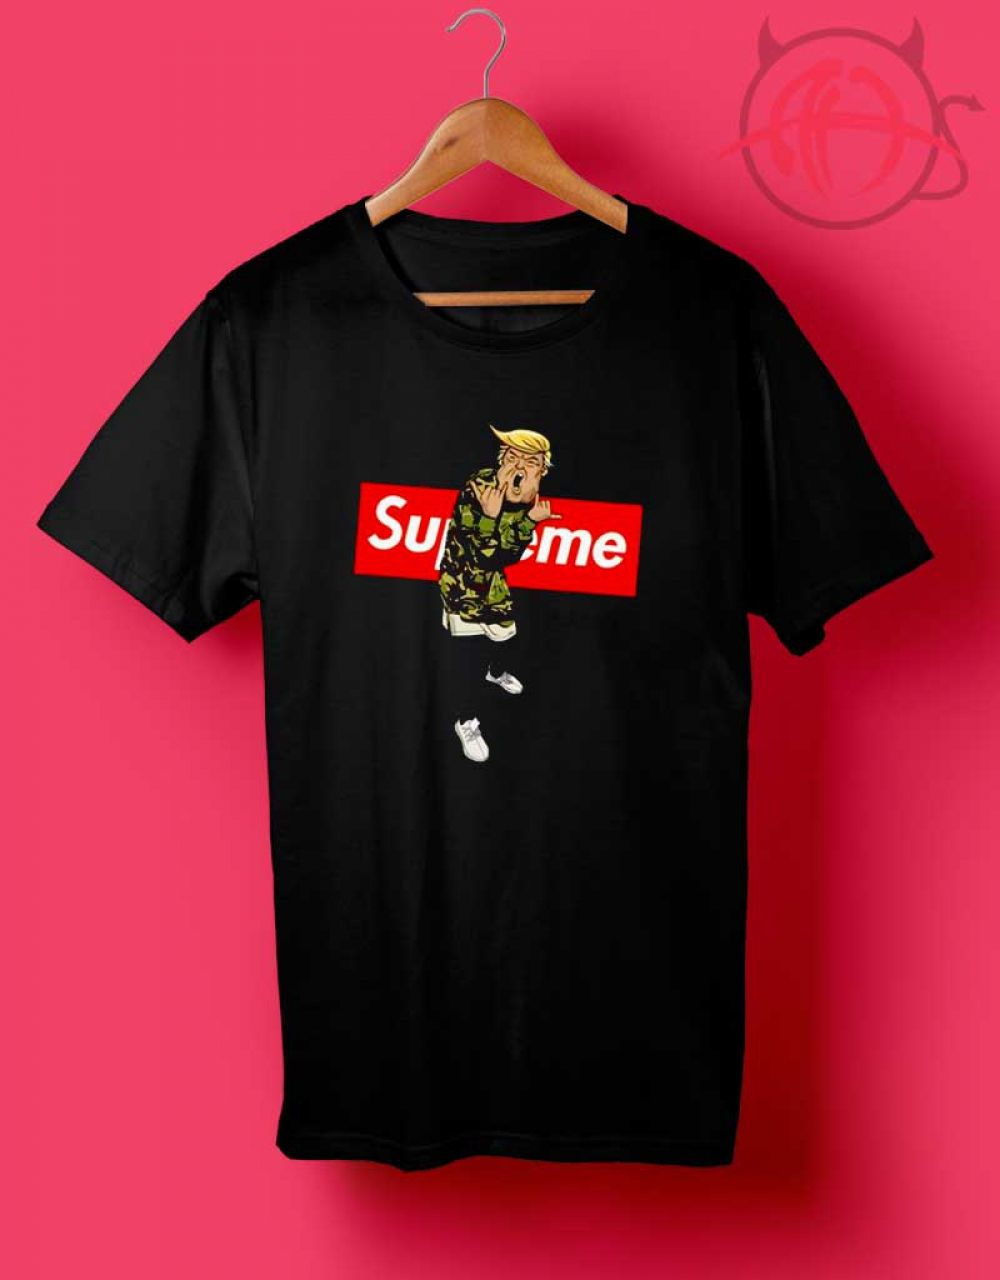 Supreme Trump T Shirts 14.50 Tee Hype Outfits Outfit